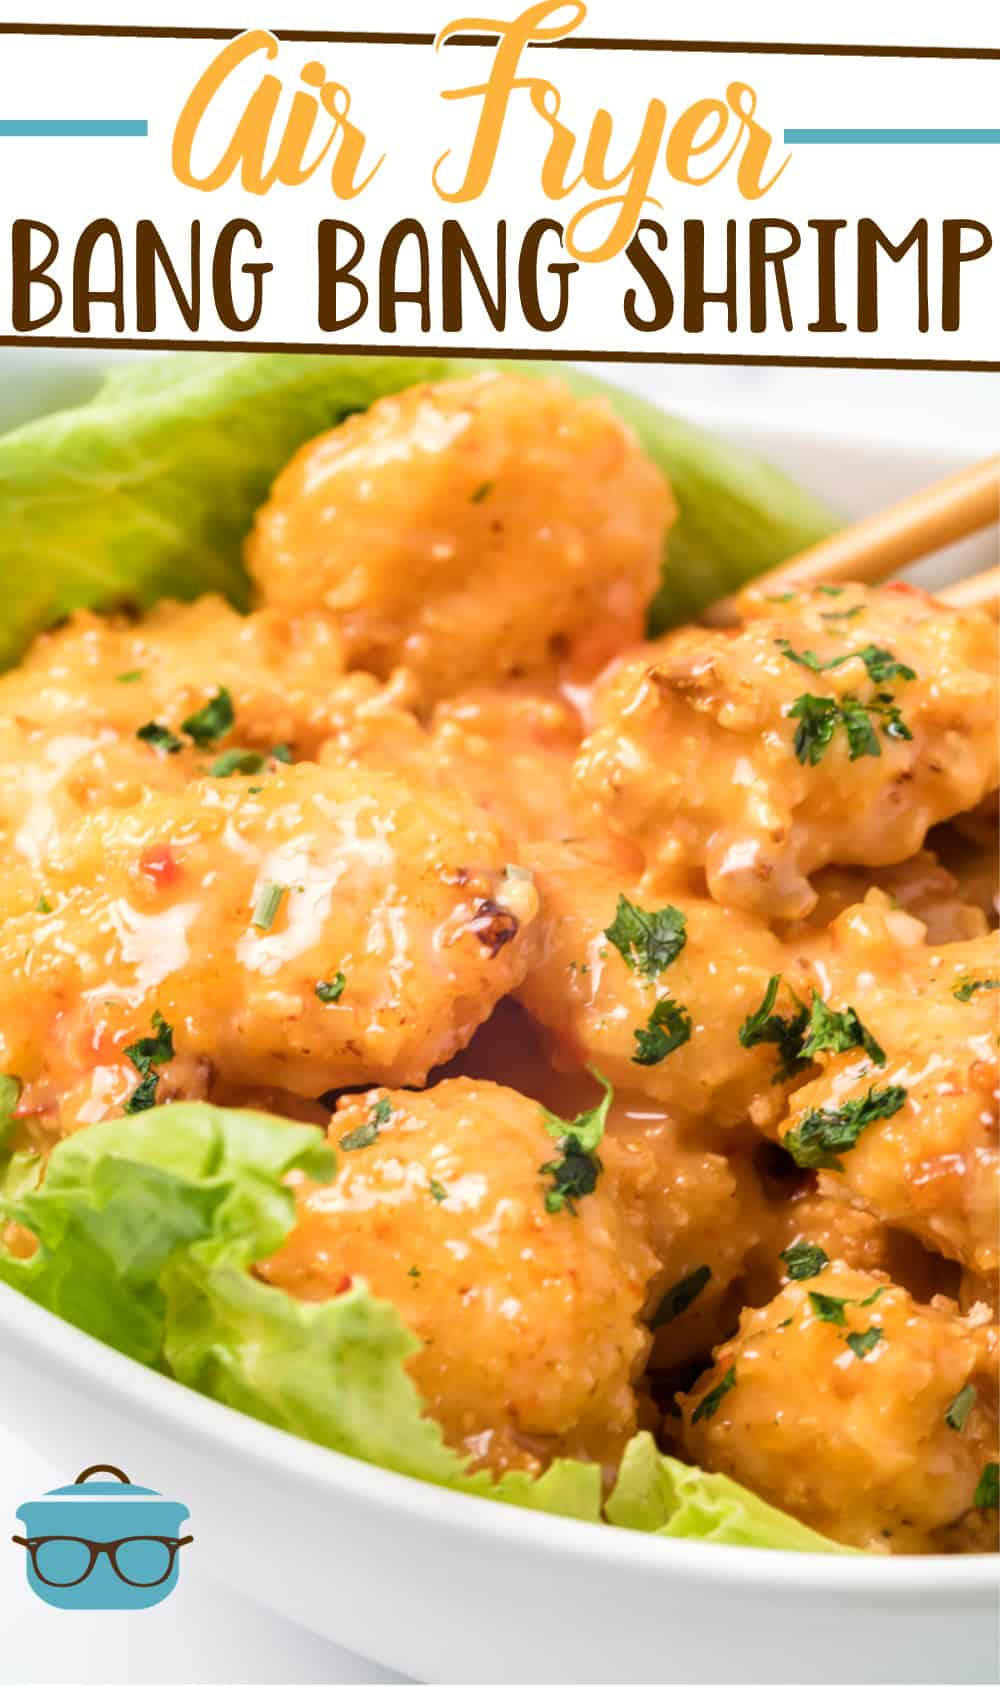 Air Fryer Bang Bang Shrimp is made with buttermilk soaked shrimp, coated in panko bread crumbs and tossed in a creamy bang bang sauce.